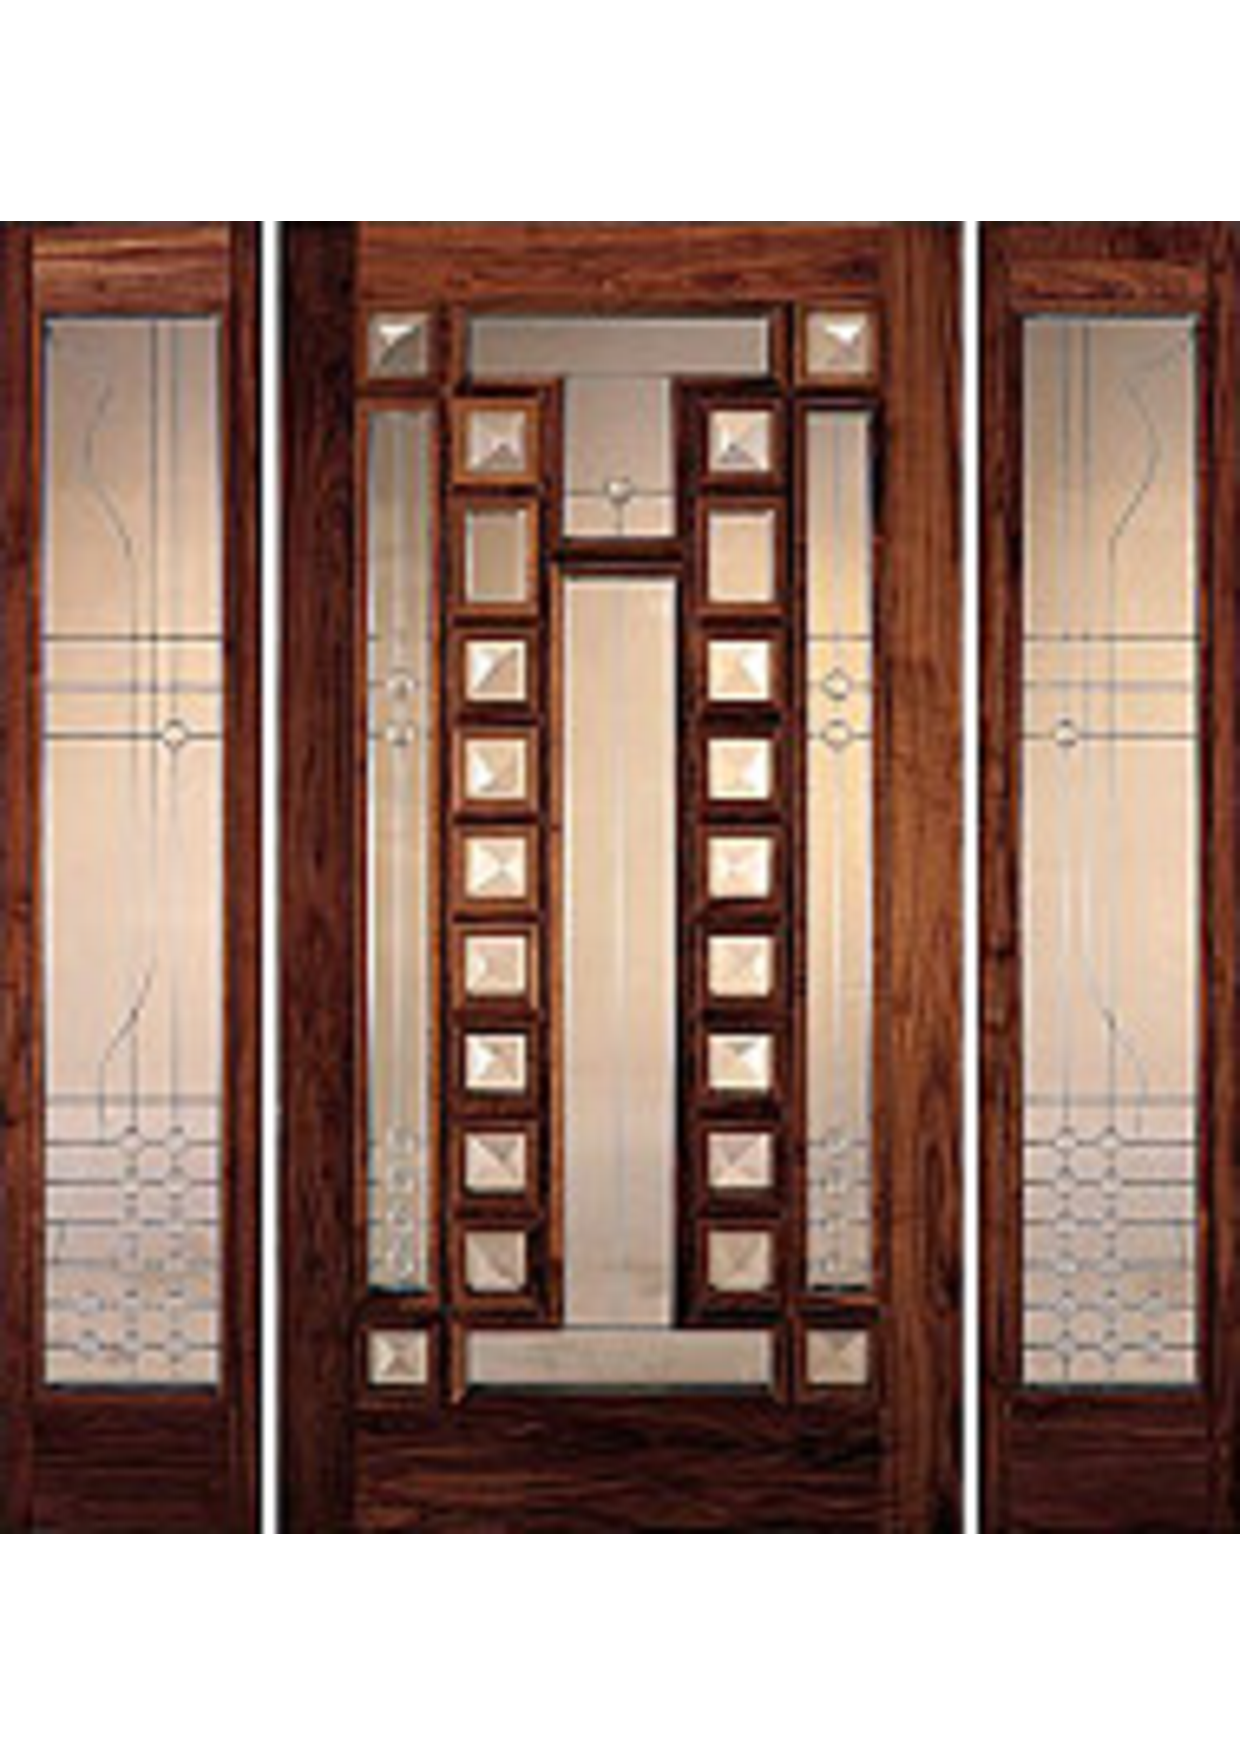 Living room door designs in india nakicphotography for Room door design for home